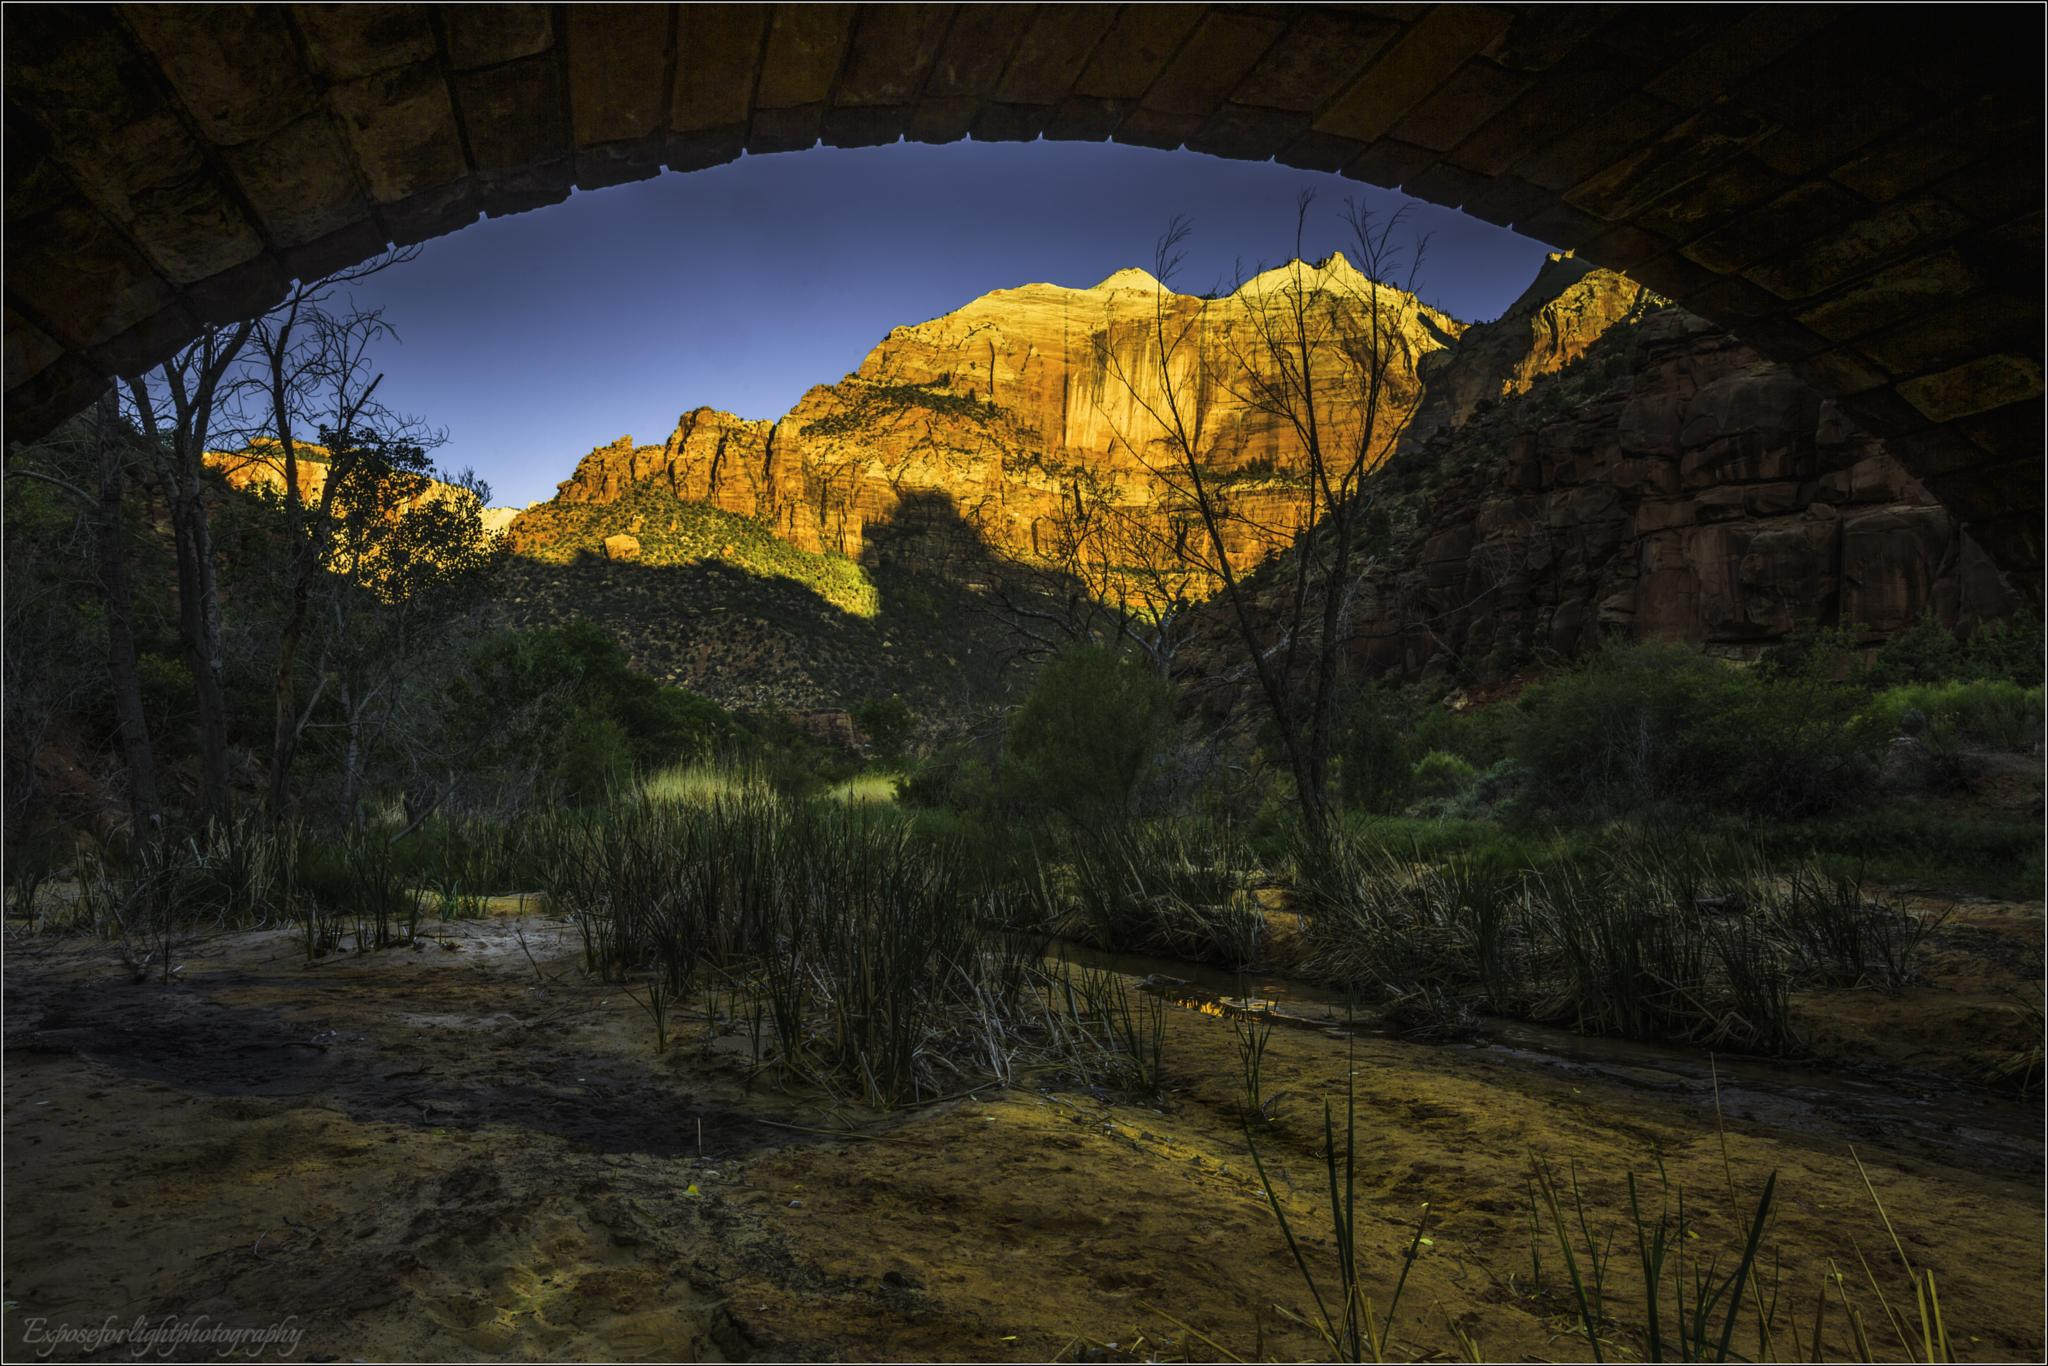 Through The Arch by Brianclark4